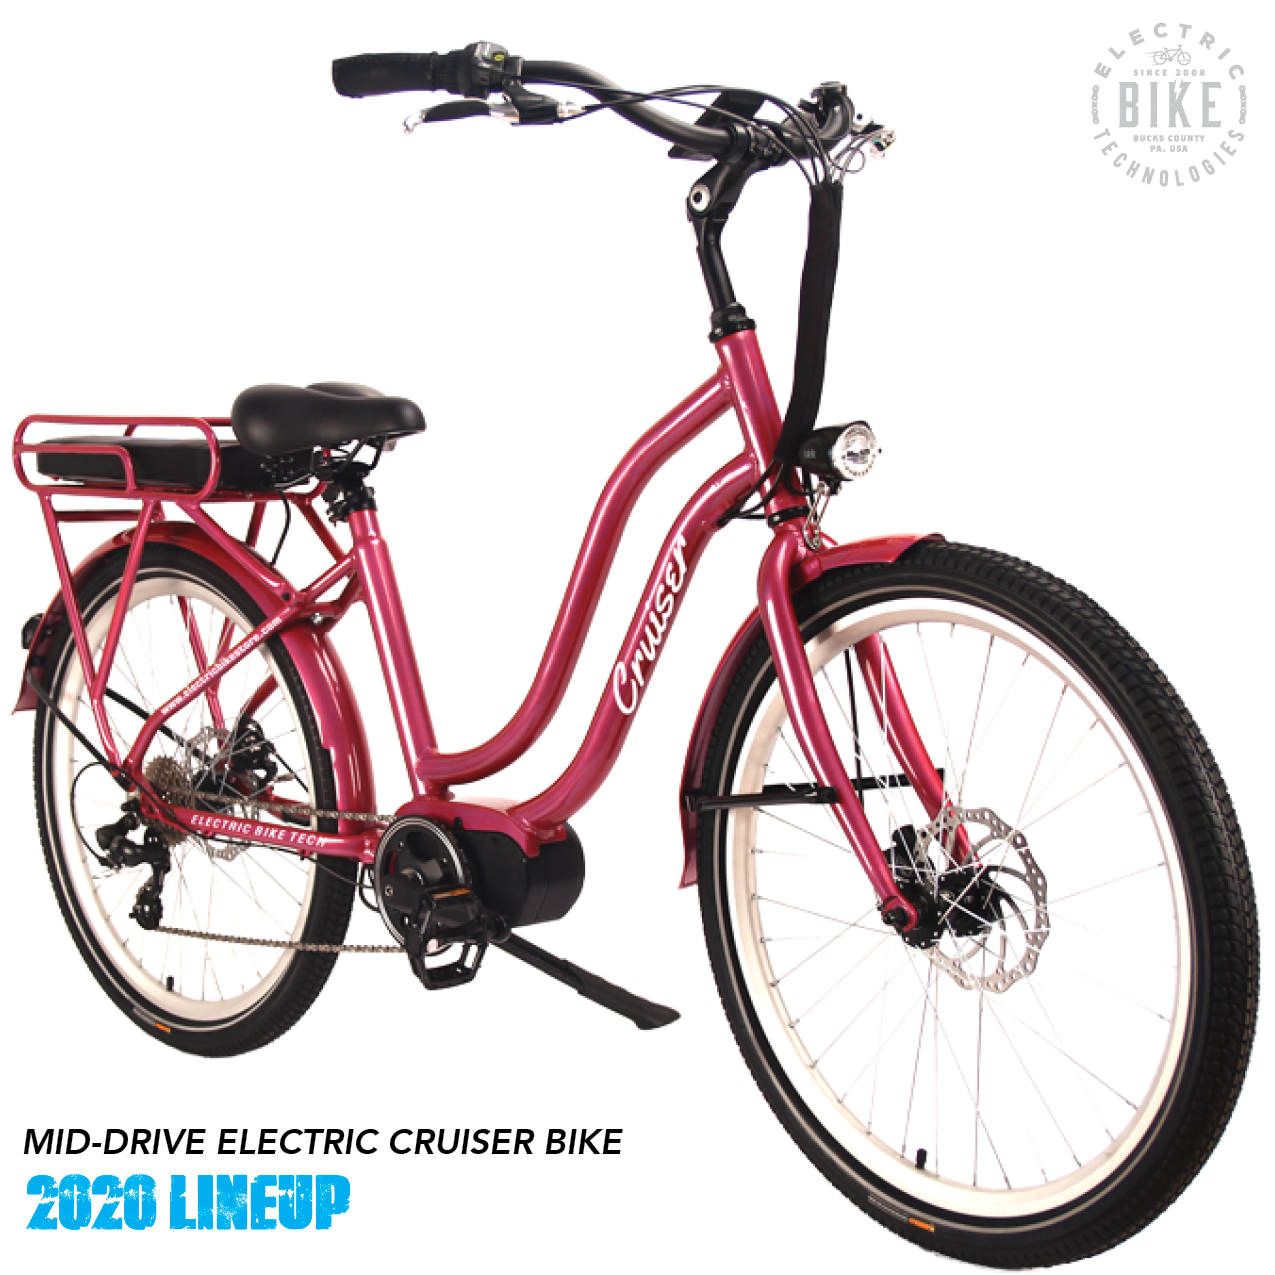 The Mid Drive Electric Cruiser Bike Is Your Stylish Ride For The